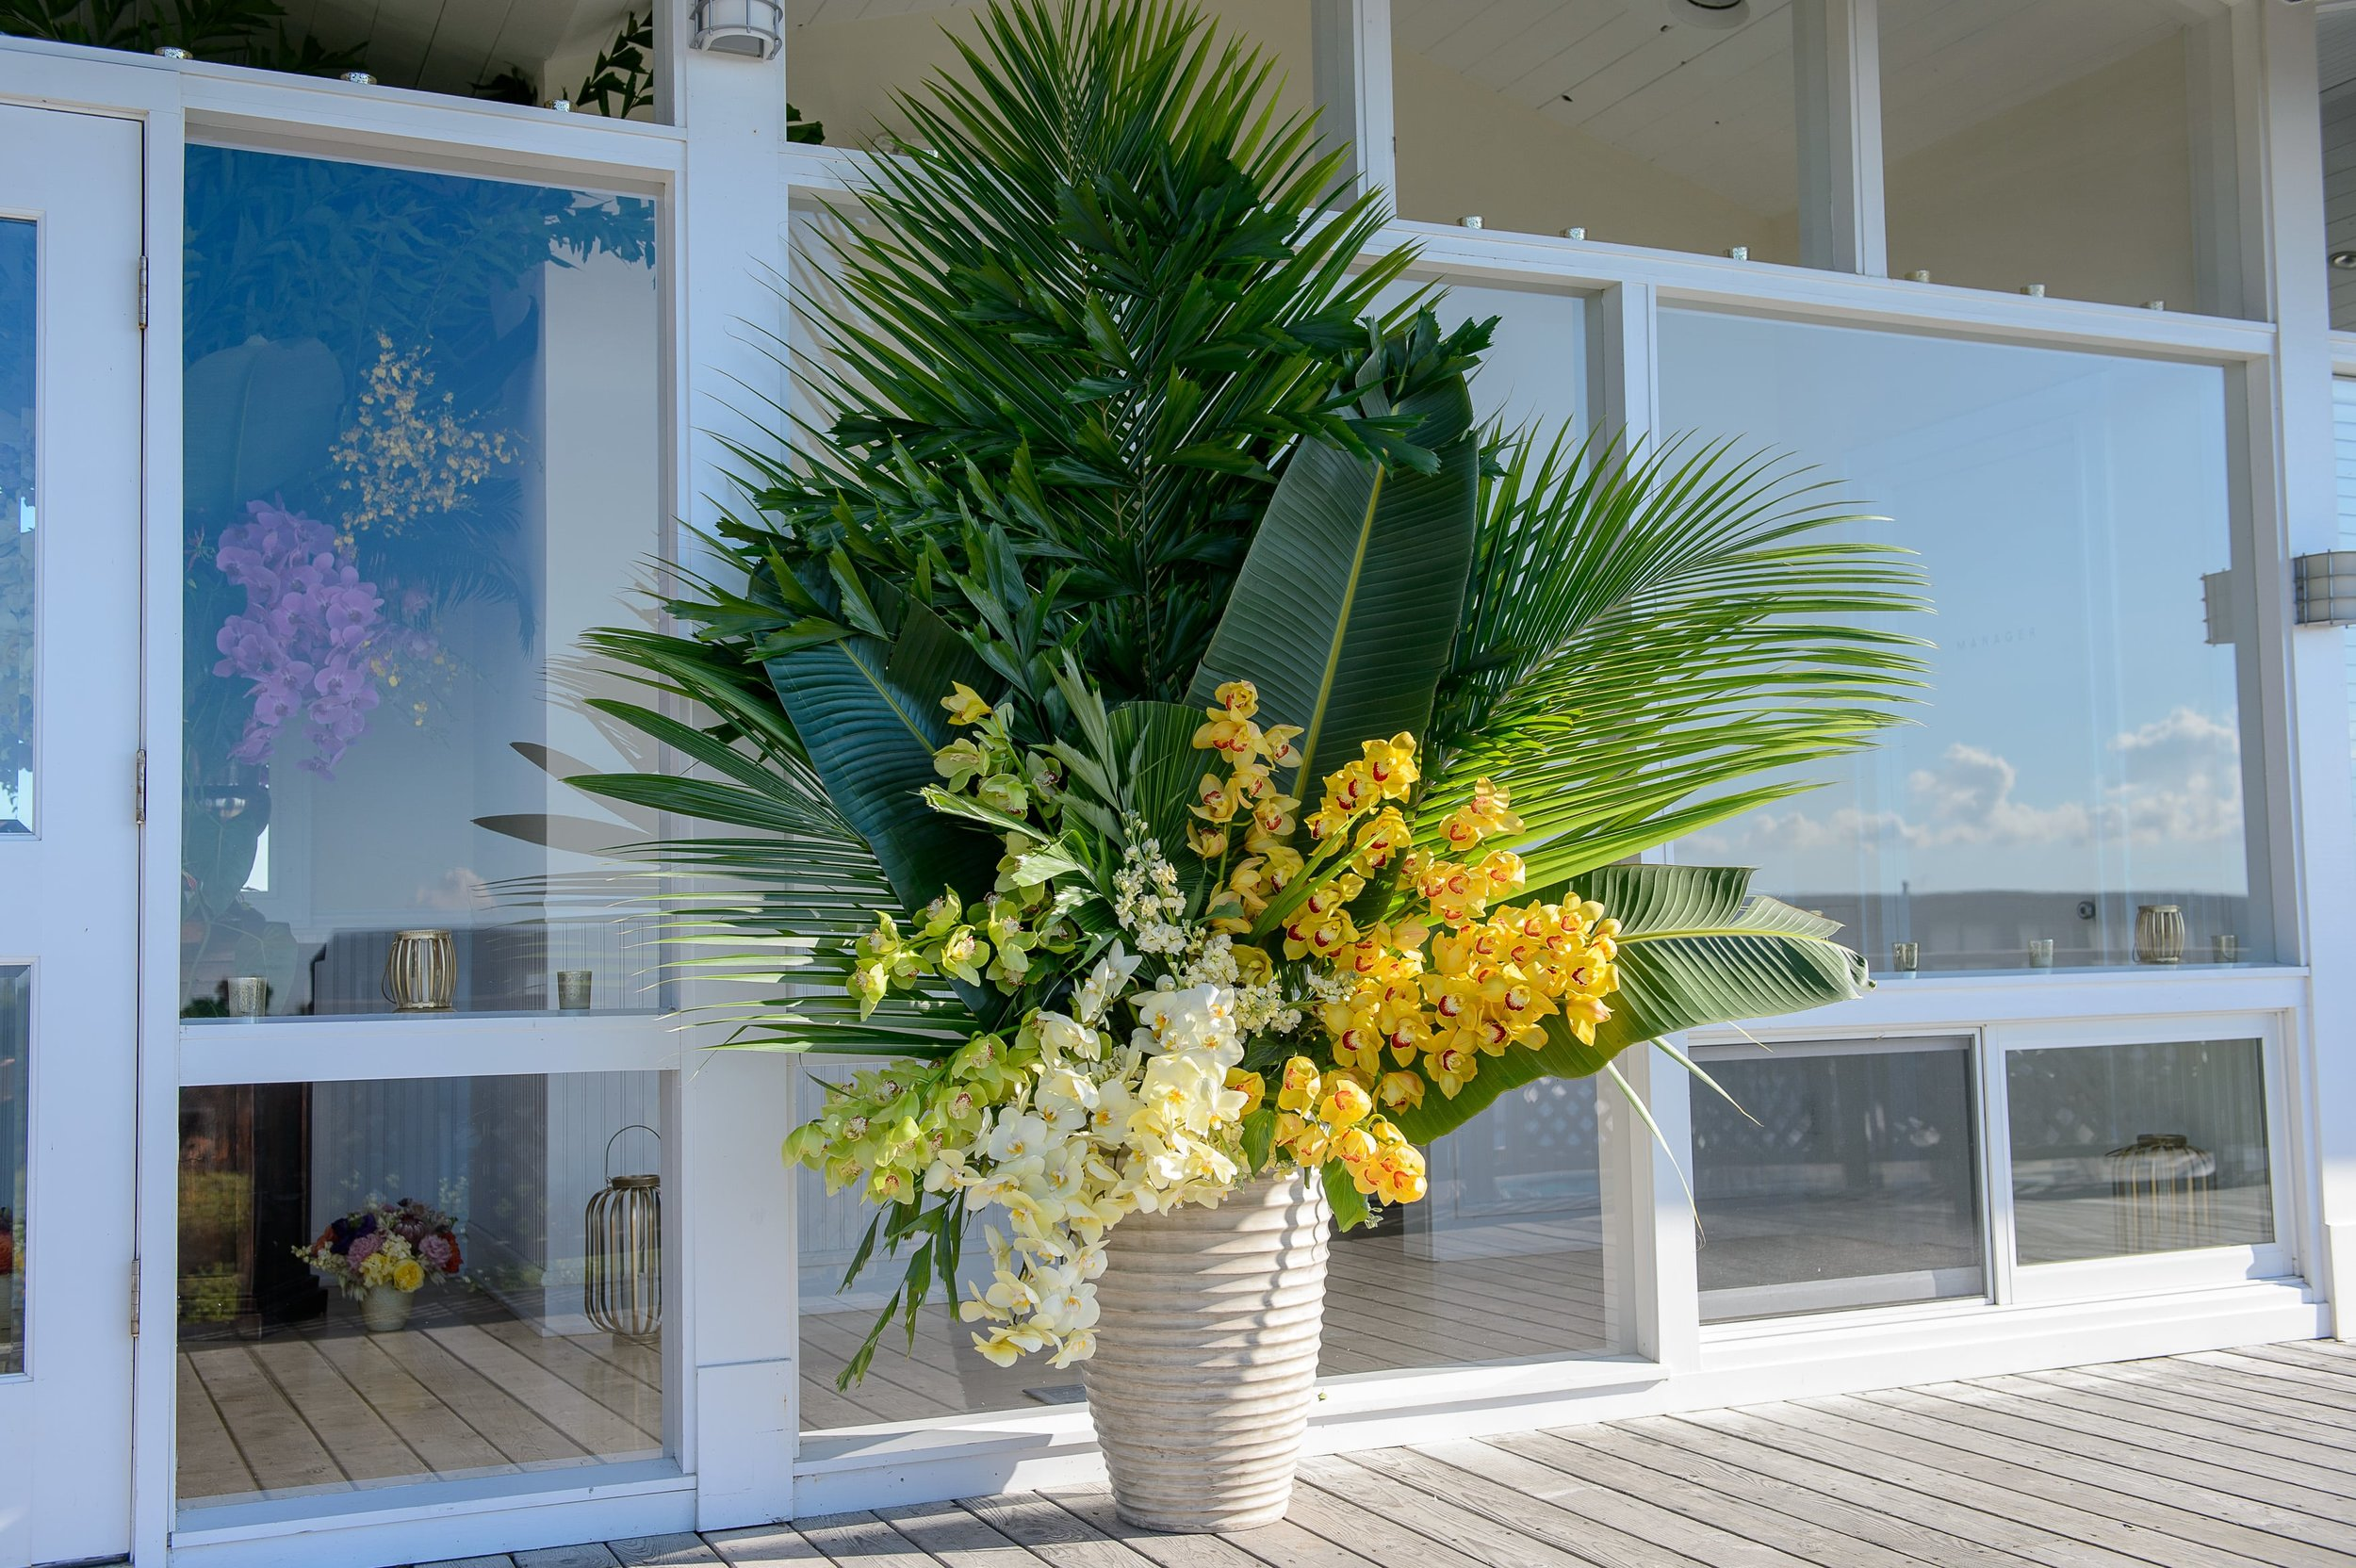 6f40f-outdoorbeacharrangement-bfloraloutdoorbeacharrangement-bfloral.jpg